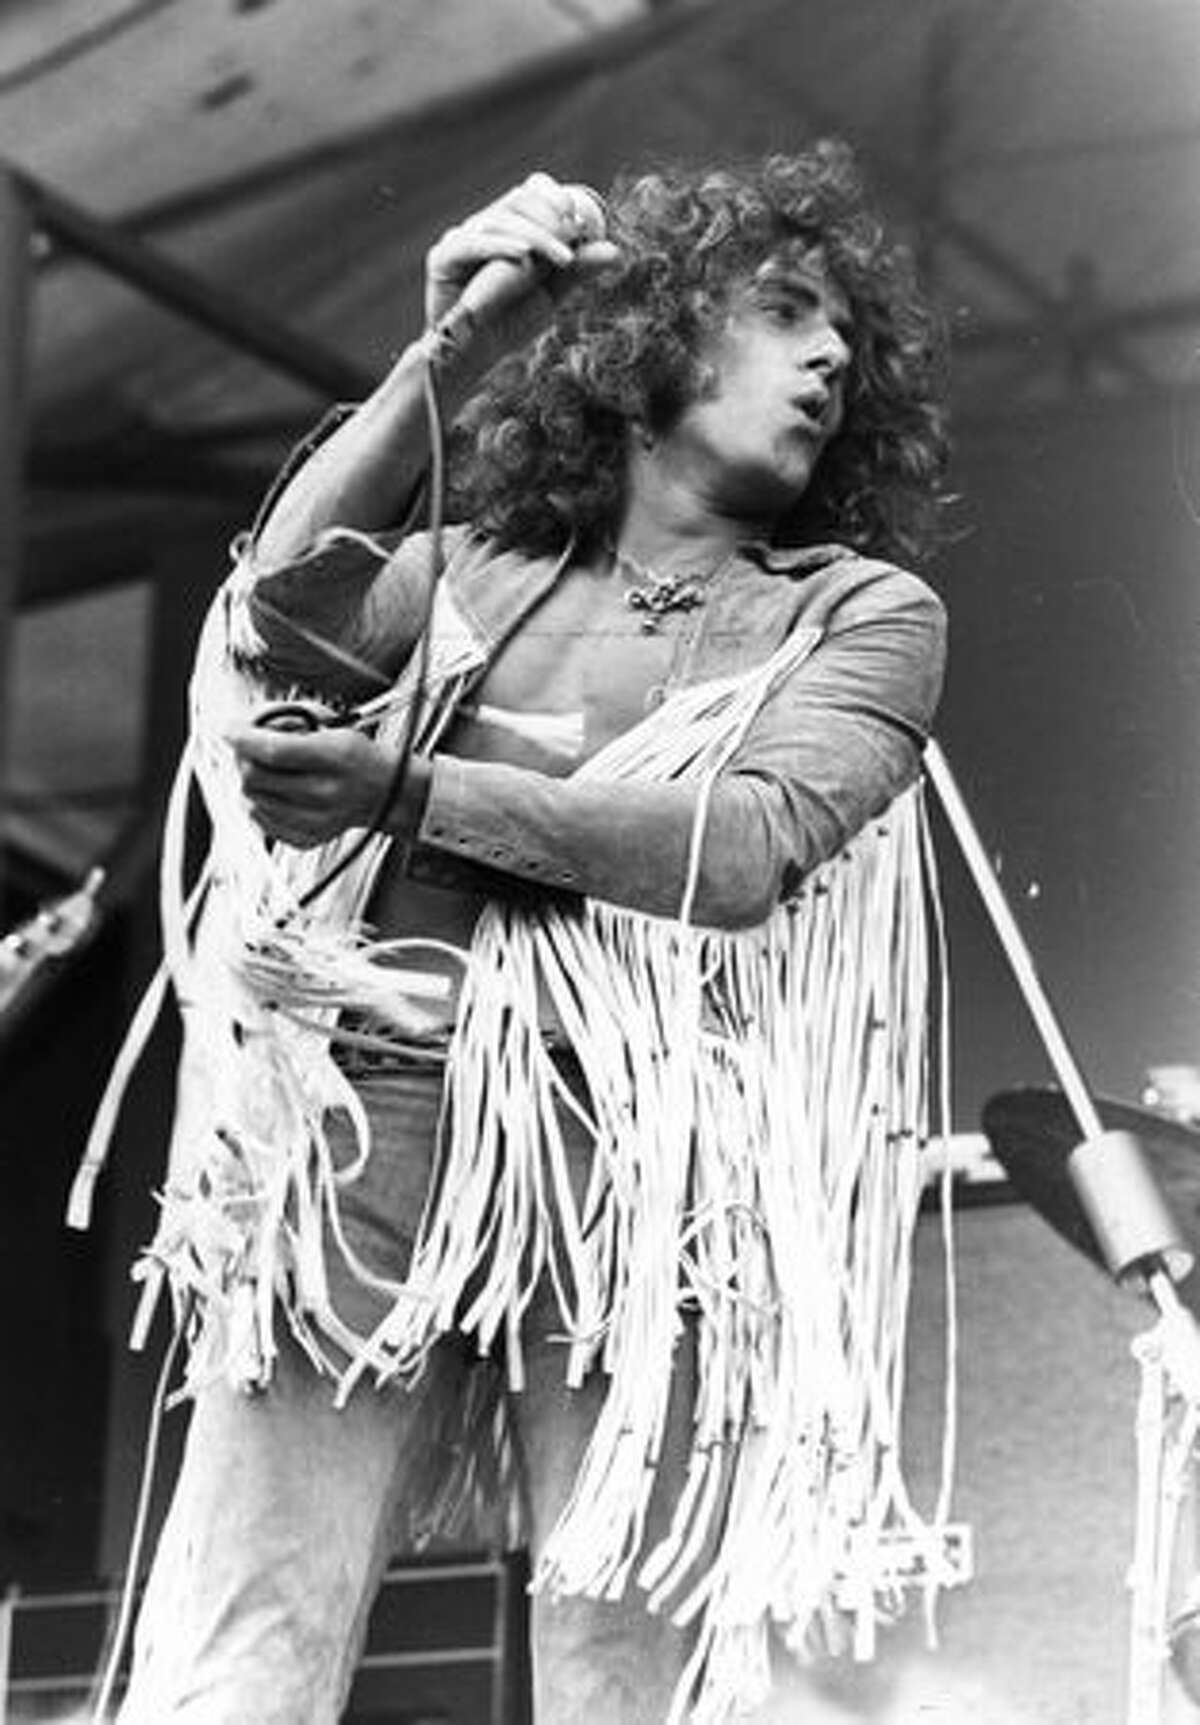 Singer Roger Daltrey performing with rock group the Who at the Isle of Wight Festival of Music, 1969.